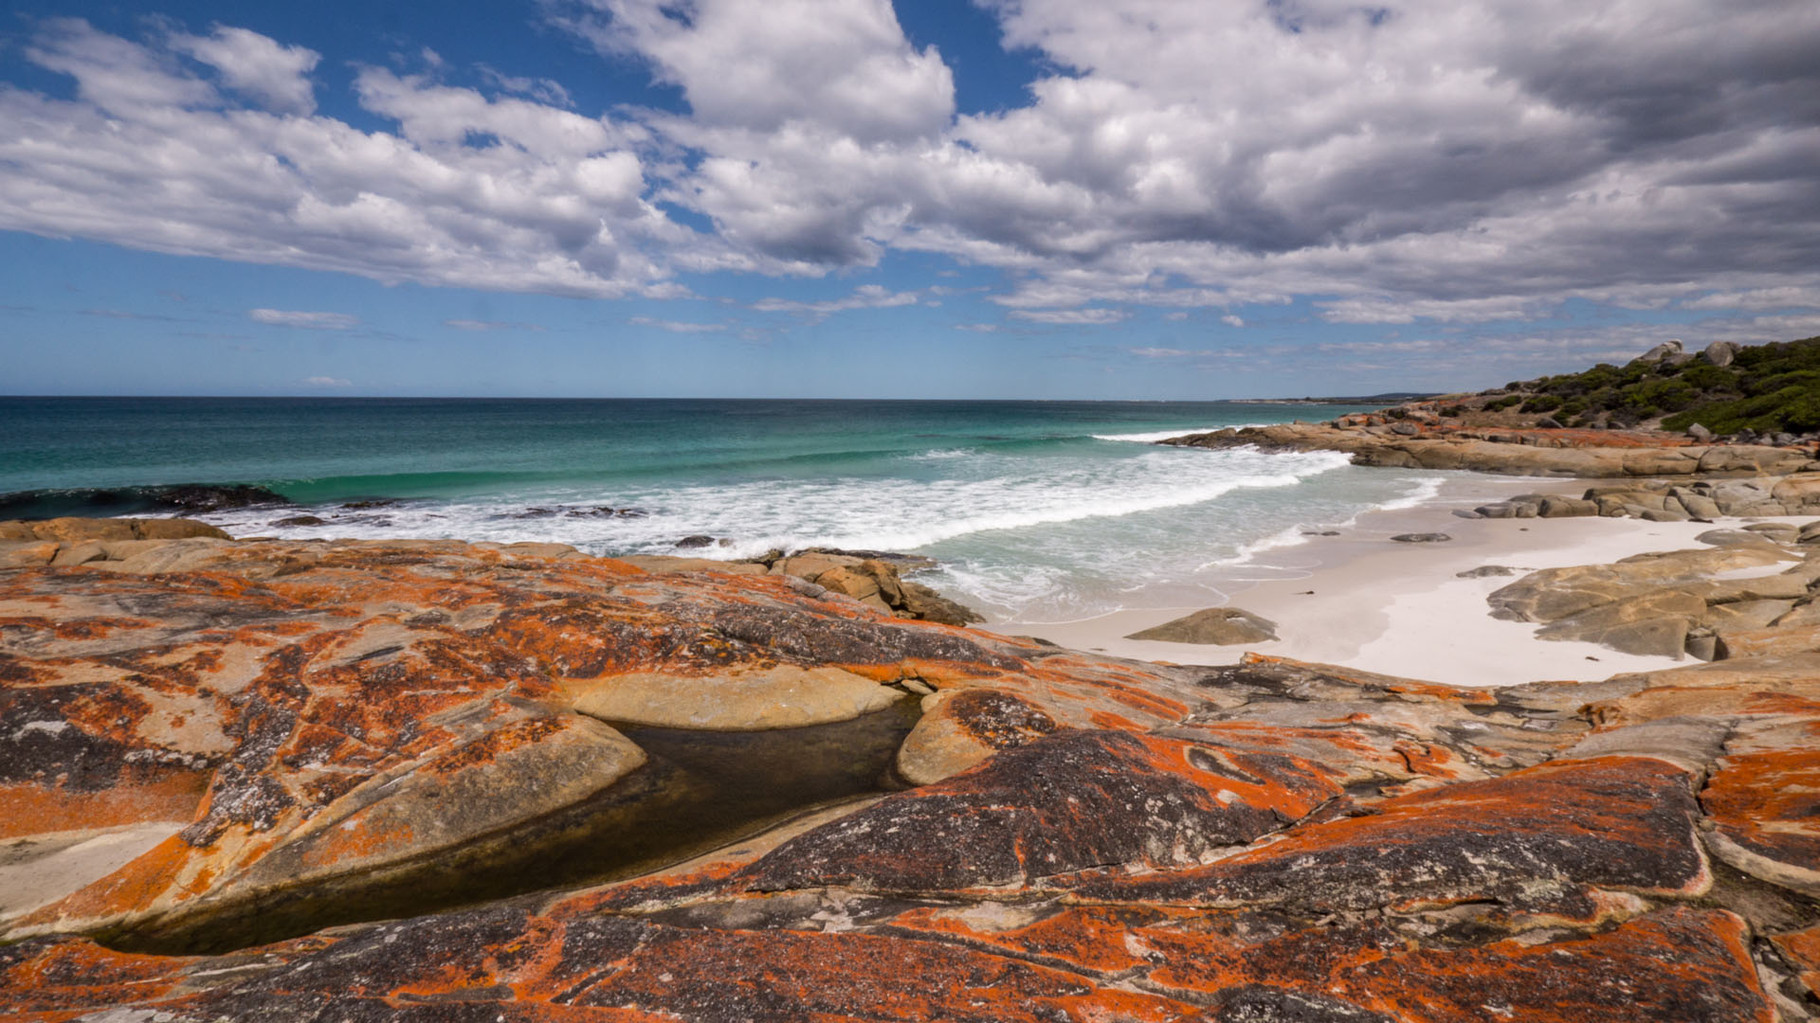 Bay of Fires National Park